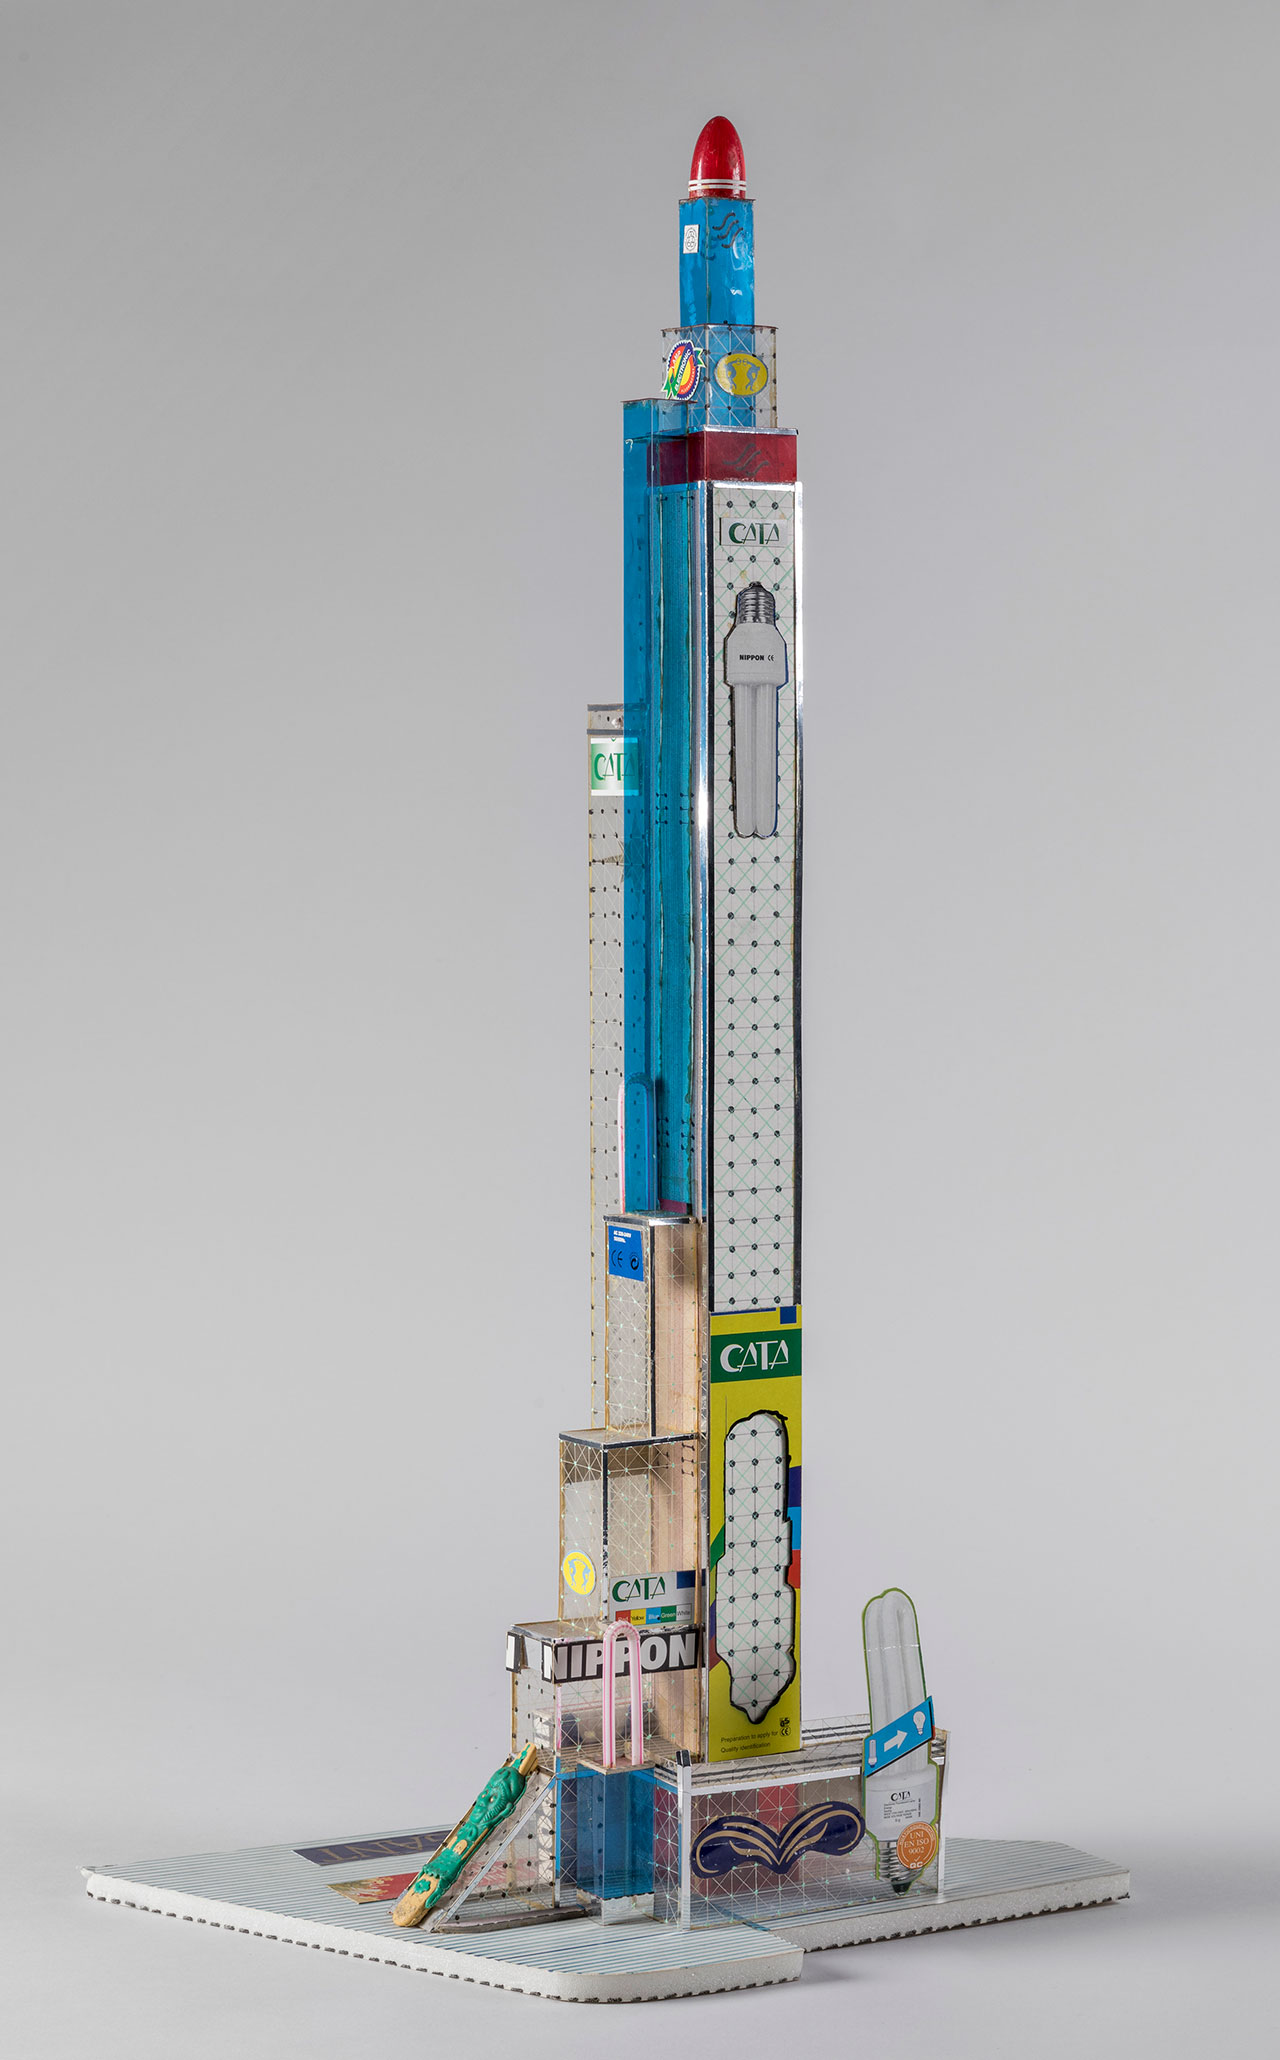 Bodys Isek Kingelez, Nippon Tower, 2005. Paper, paperboard, plastic, and other various materials, 67 × 34 × 22 cm, irreg. Courtesy Aeroplastics Contemporary, Brussels. Vincent Everarts Photography Brussels.